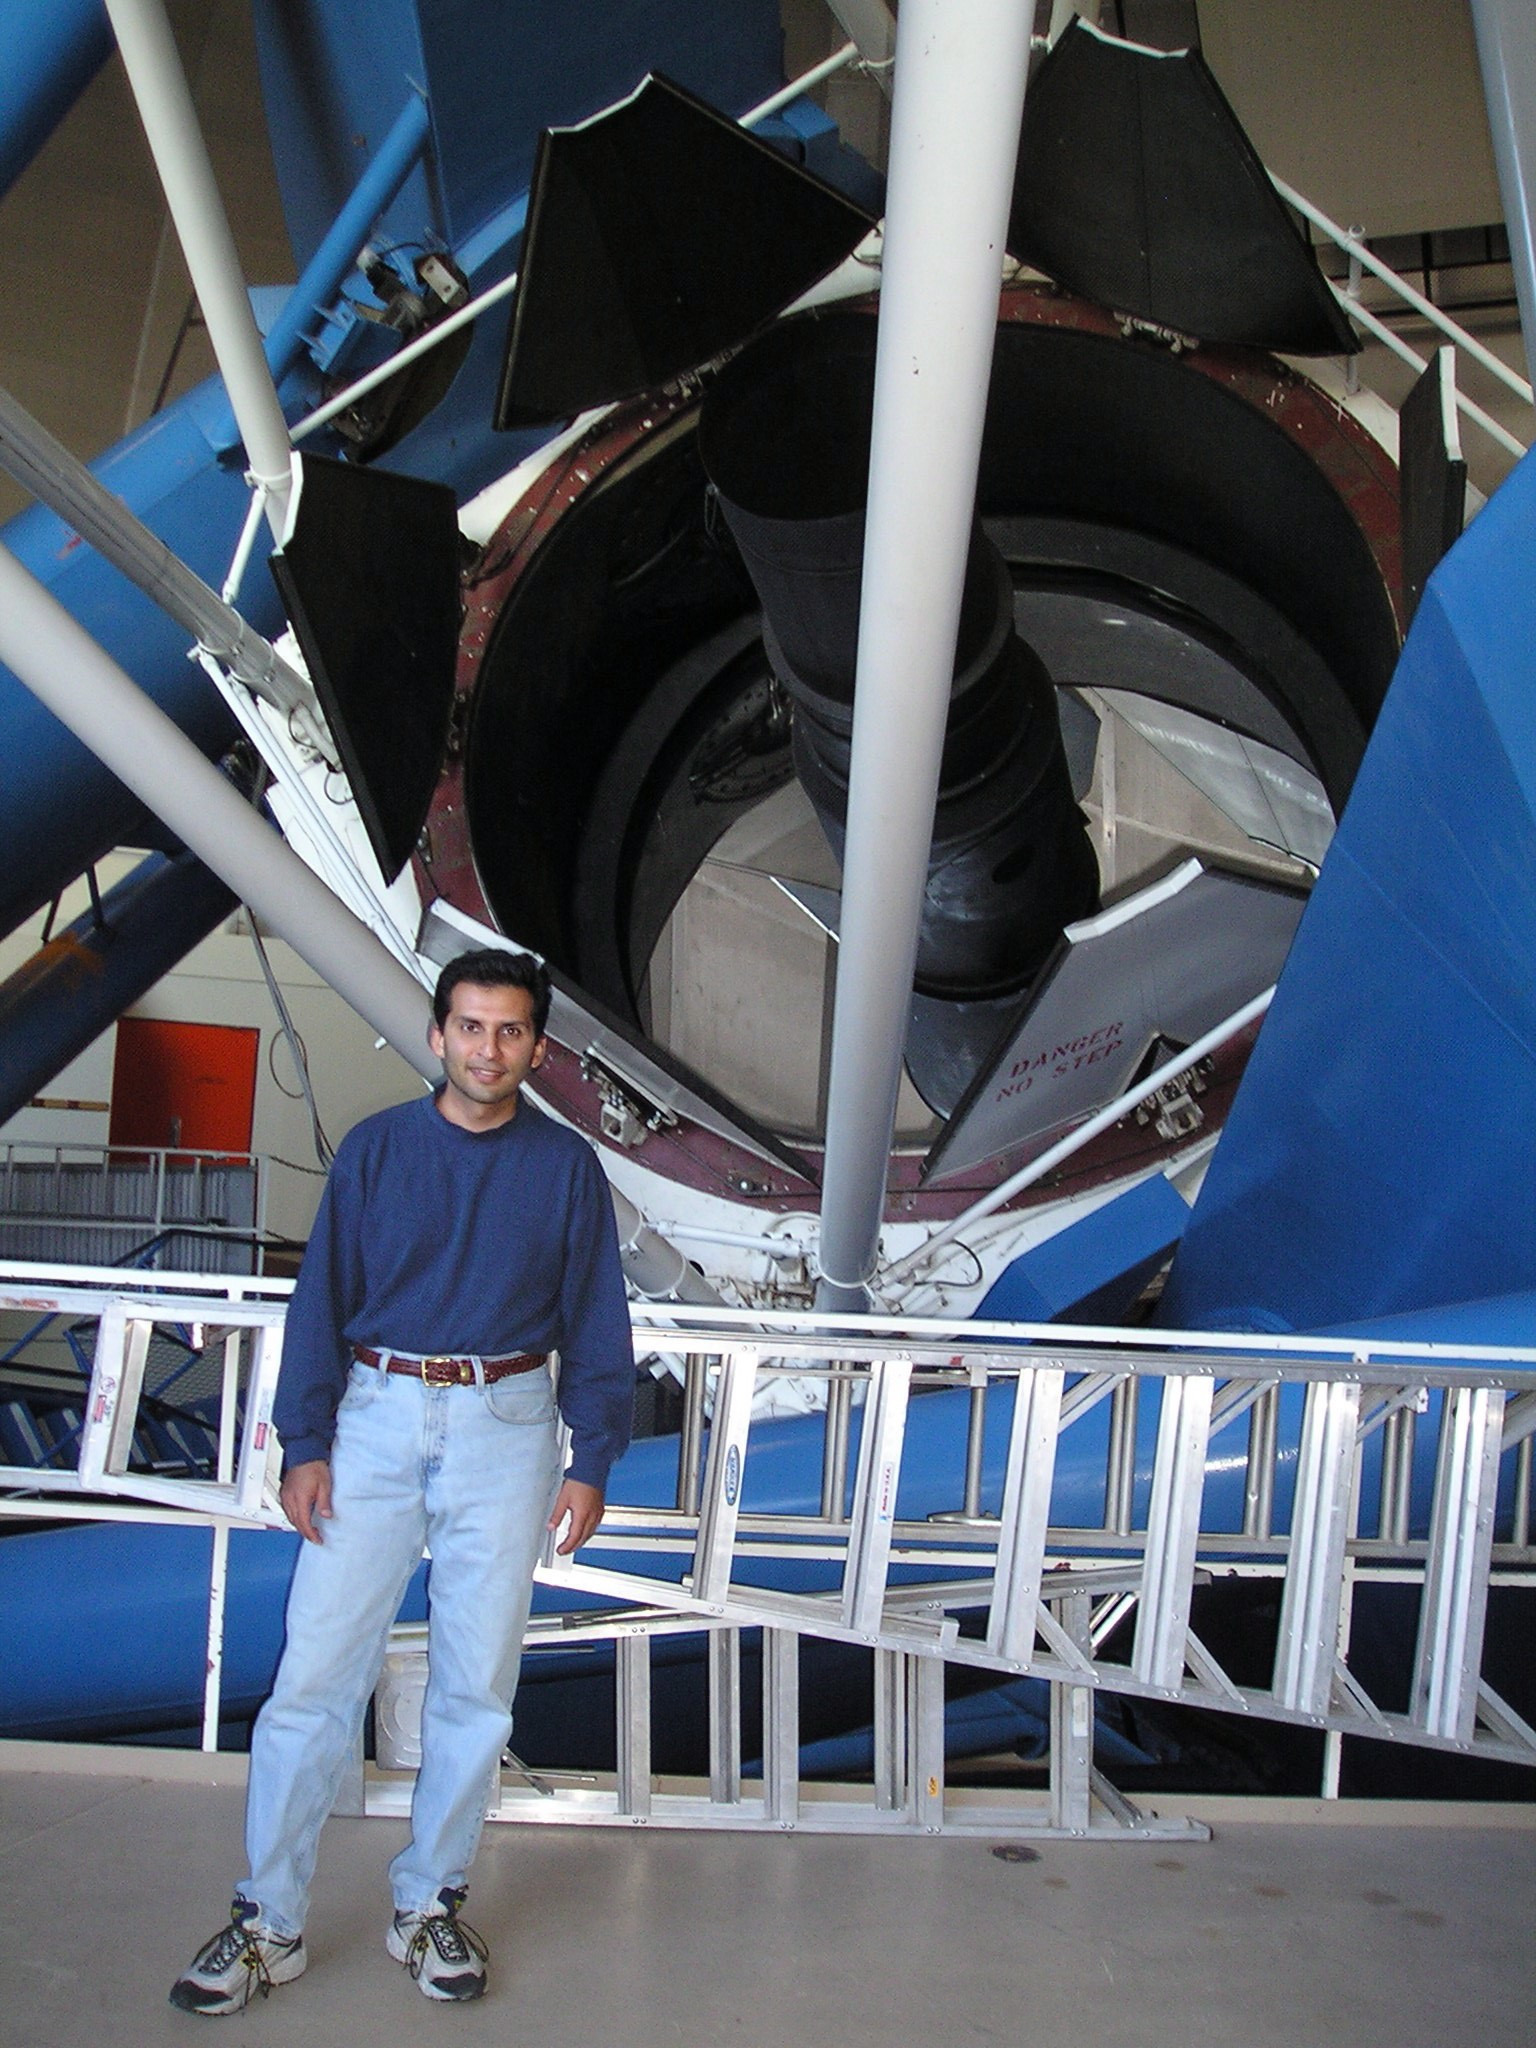 June 2004: At the 4-meter telescope at Kitt Peak National Observatory in Arizona, US